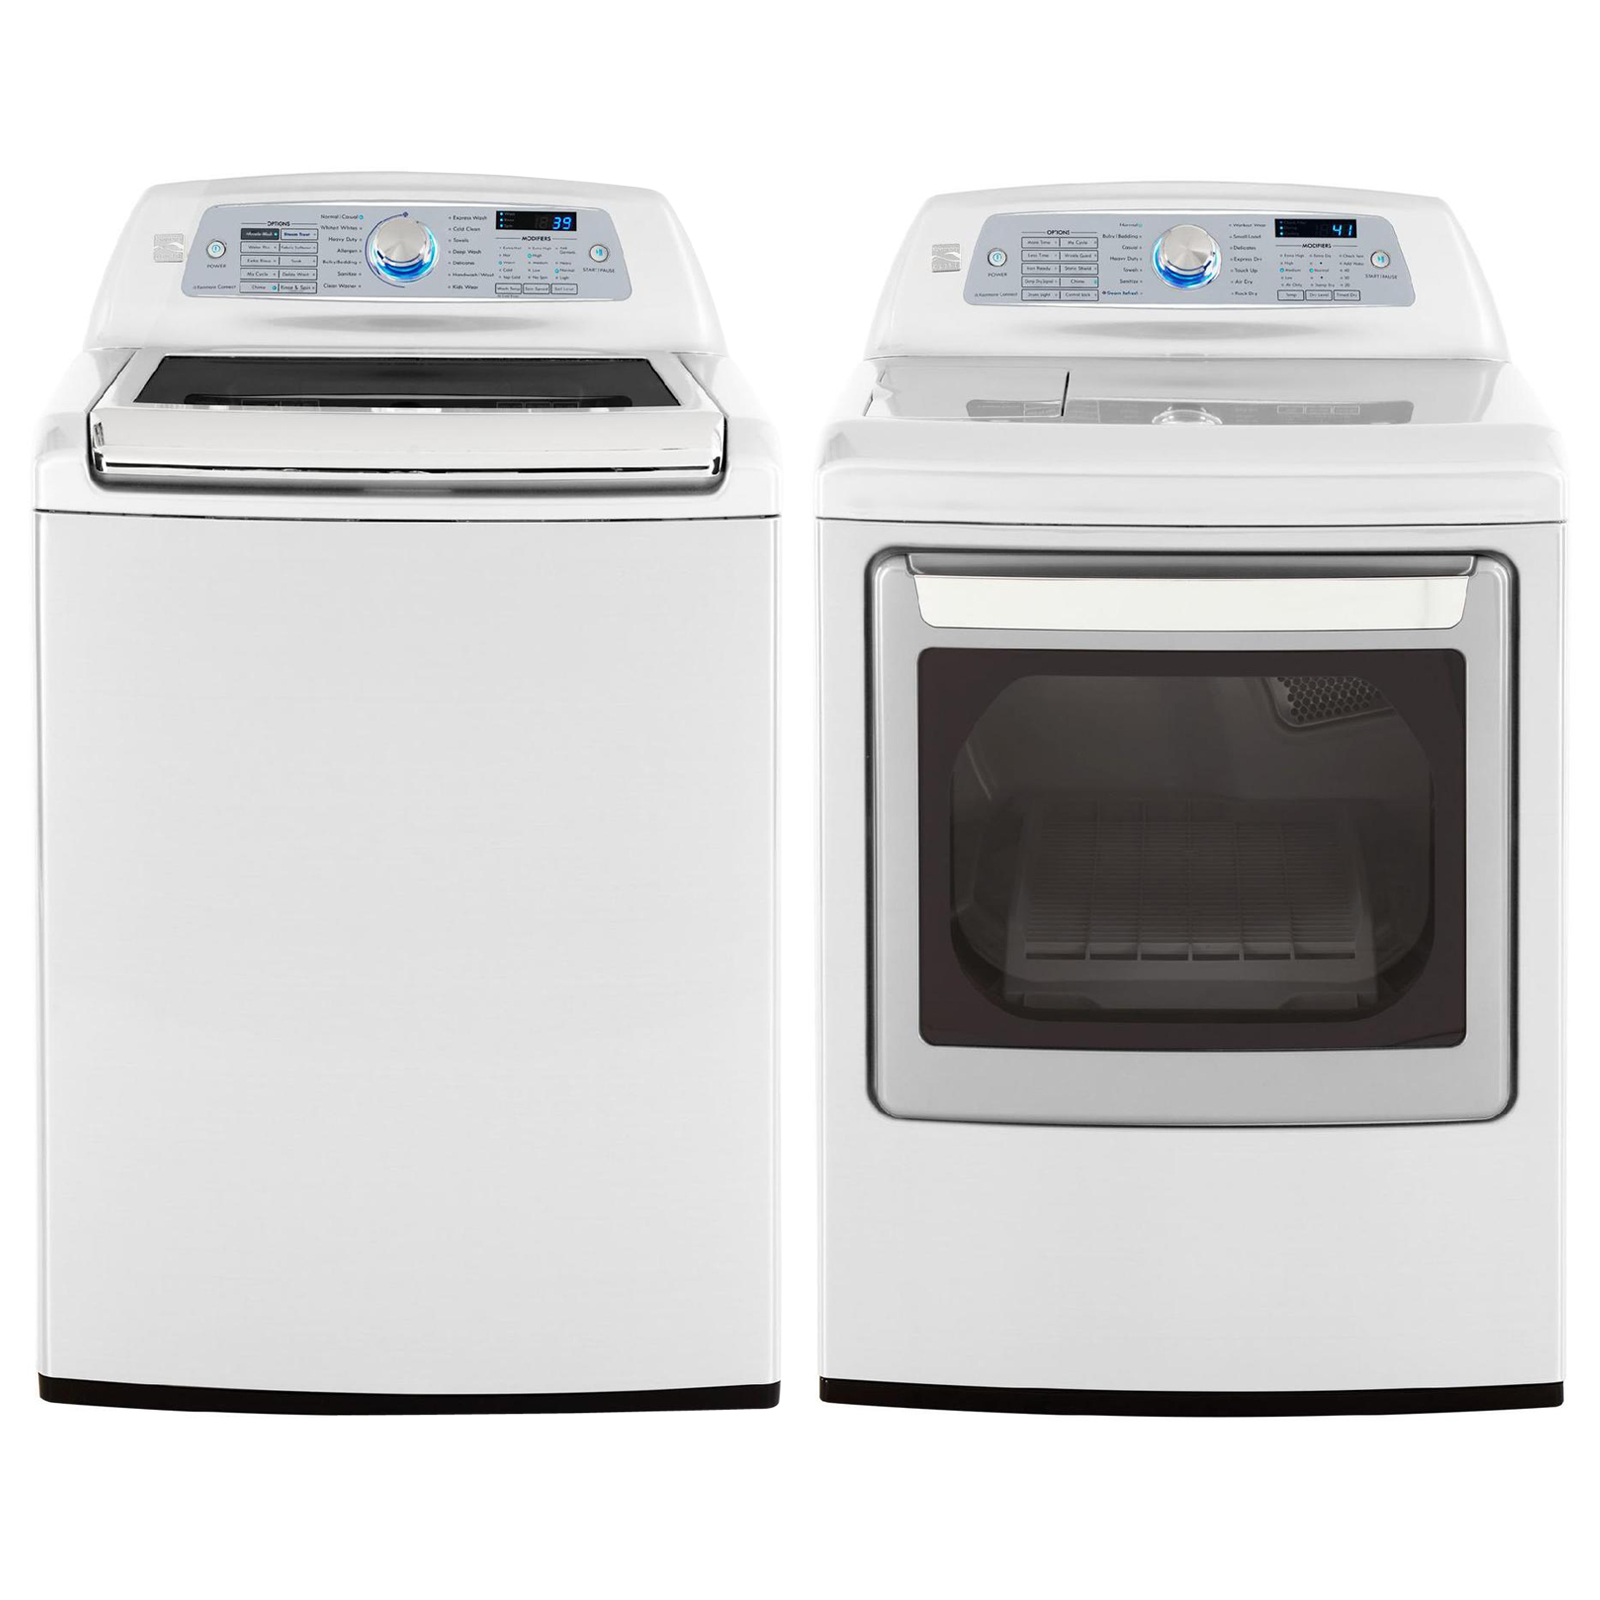 Kenmore elite 7 3 cu ft electric dryer w steam white 61622 Sears kenmore washer